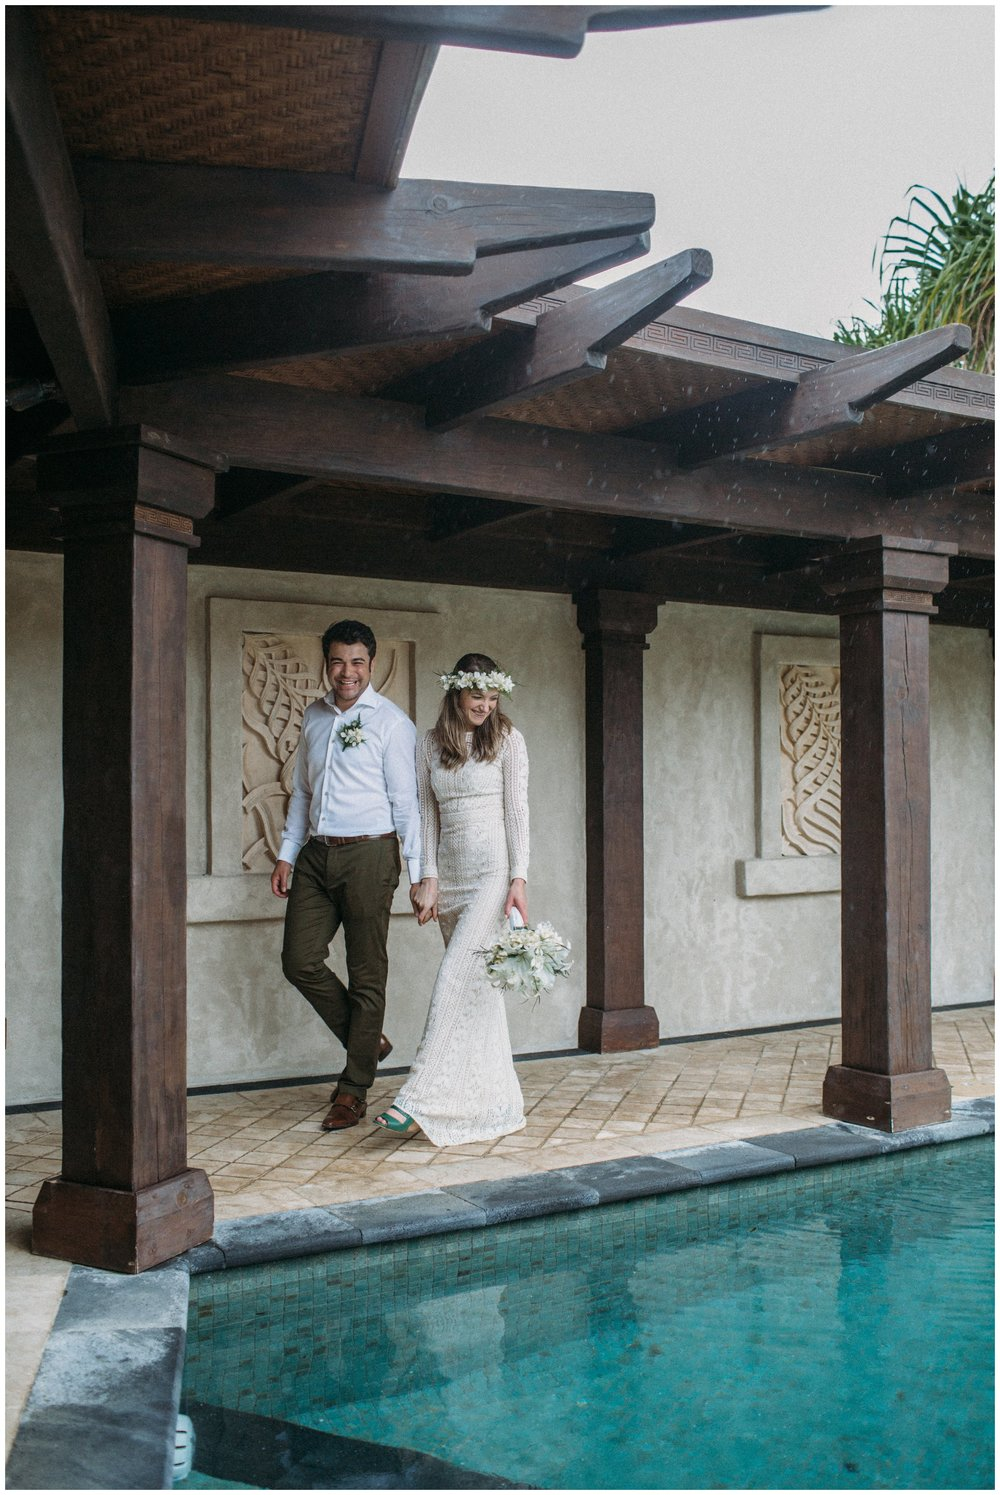 Julia + Si   Te Manava Luxury Villa Wedding, Rarotonga - Cook Islands